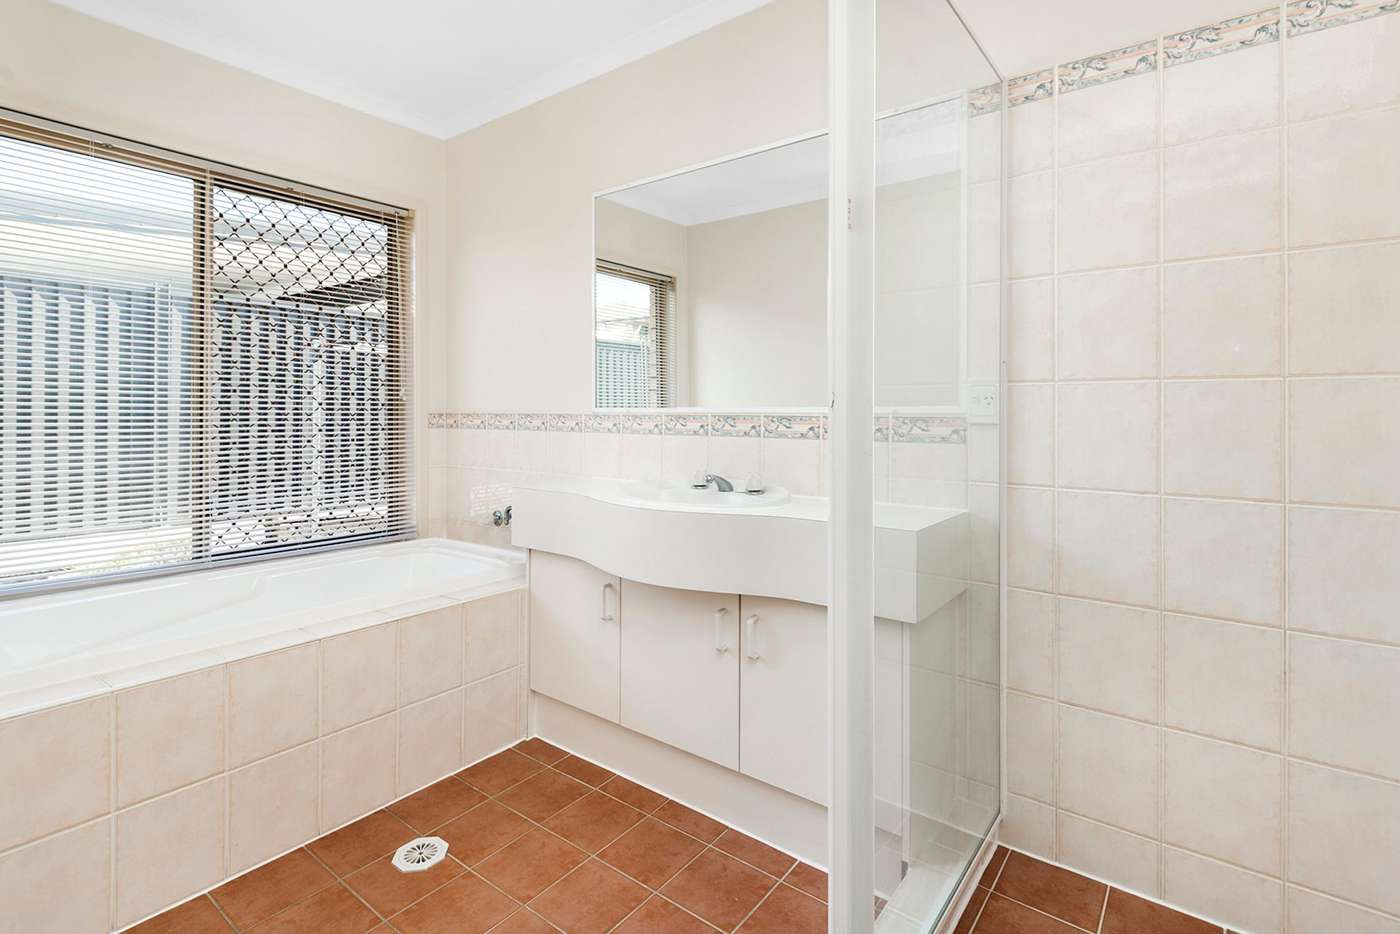 Seventh view of Homely house listing, 25 Maisie Place, Eight Mile Plains QLD 4113